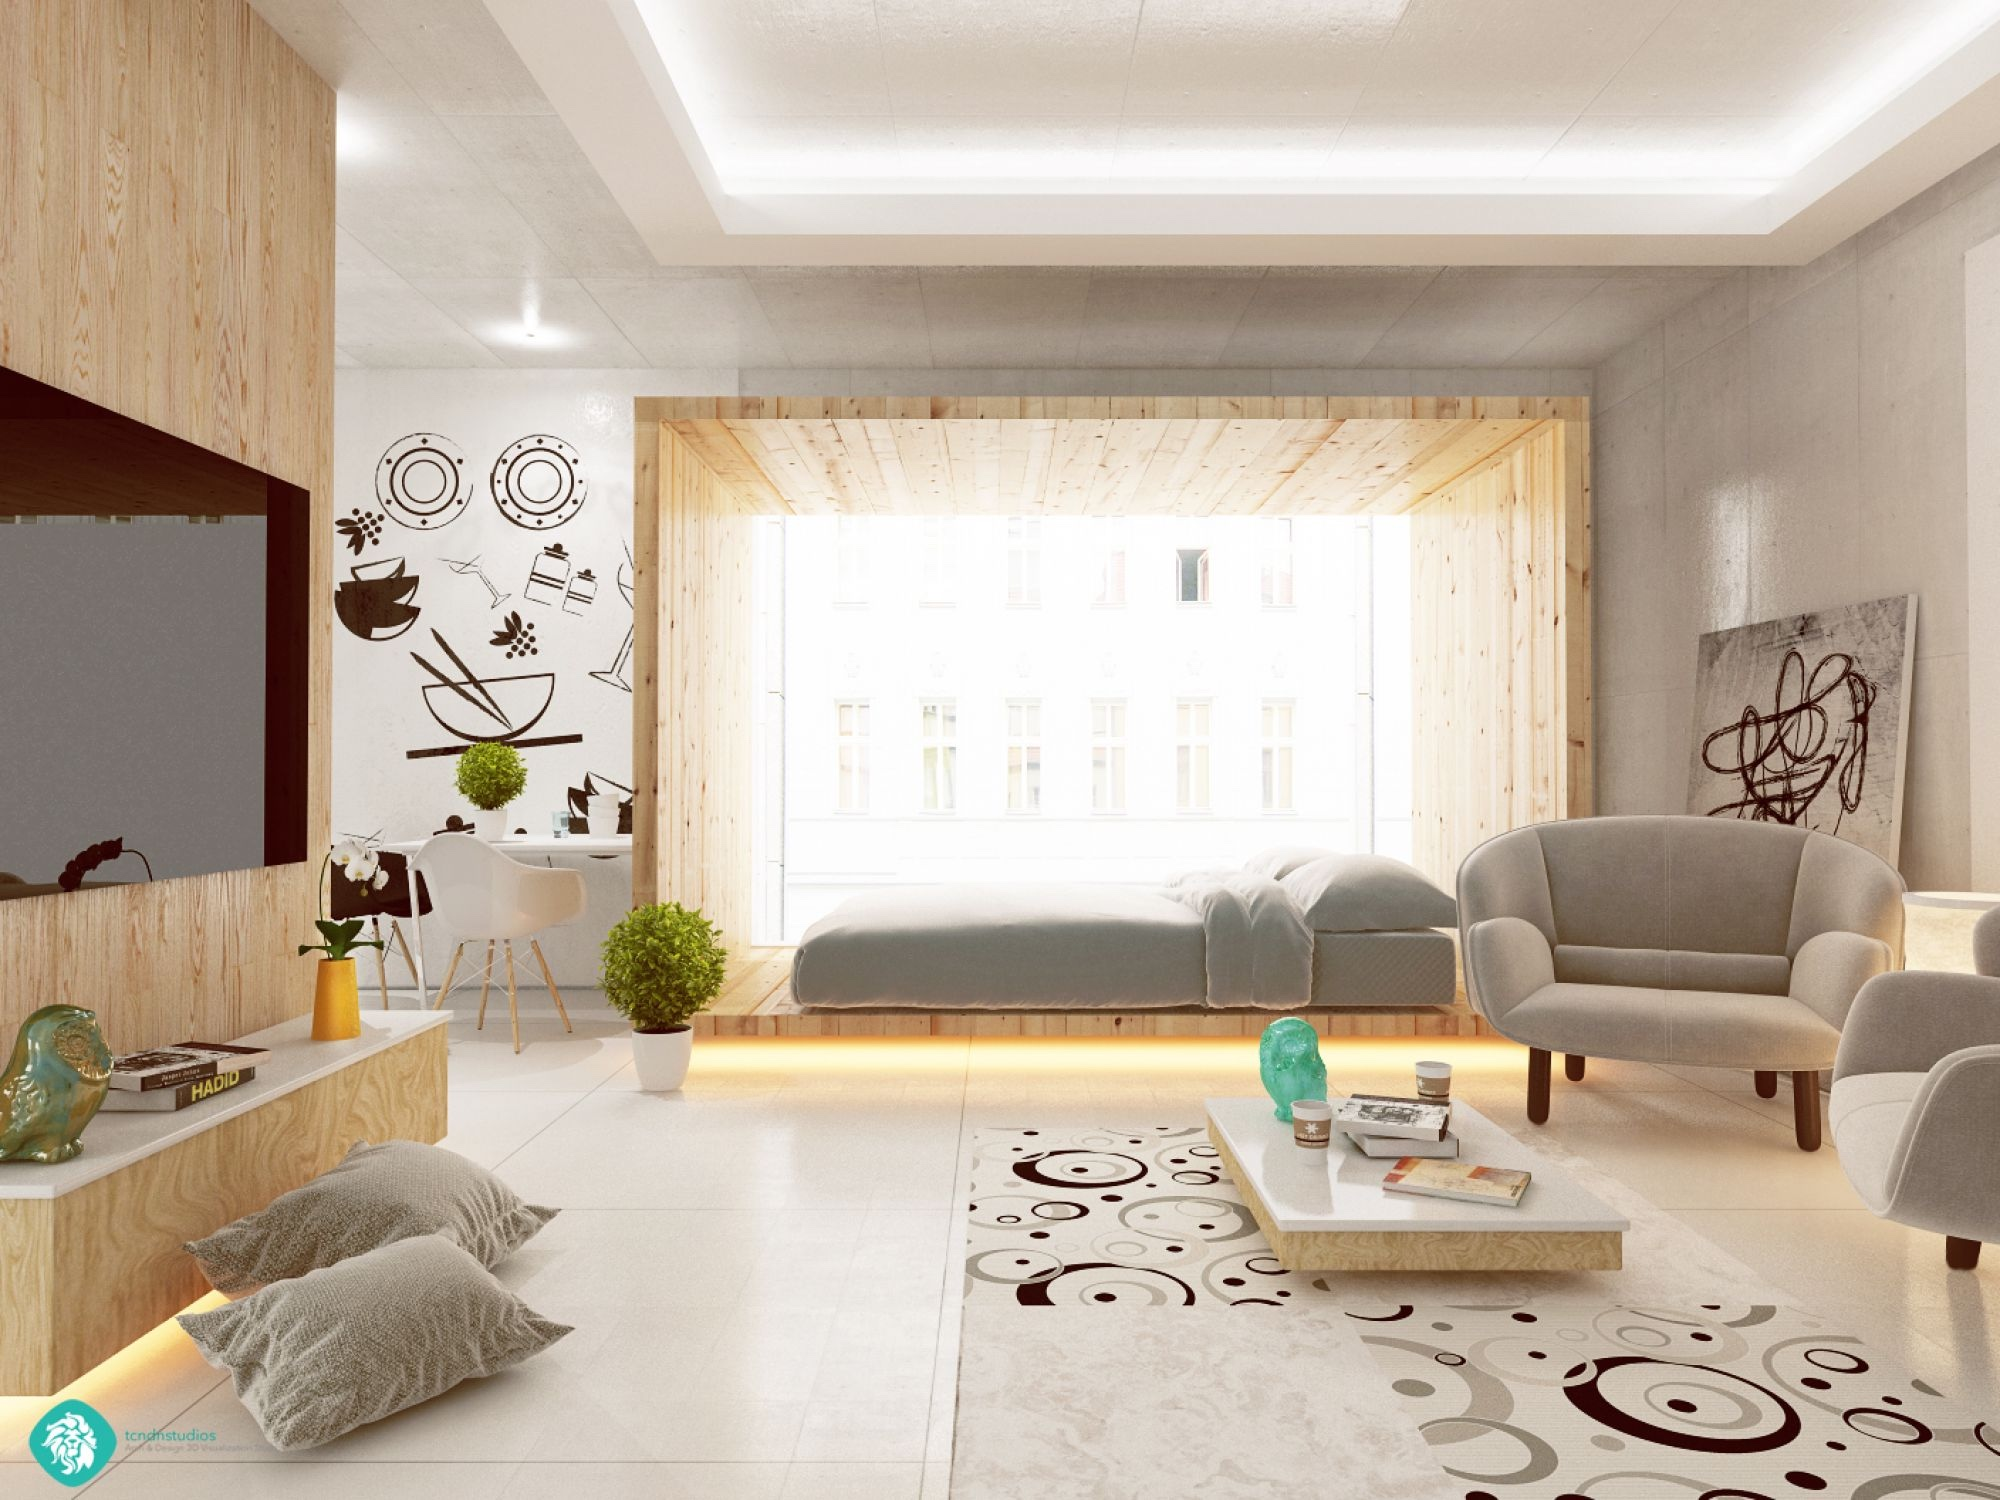 Sunny Studio Apartment - Living and sleeping areas exist in harmony in these comfortable studio spaces